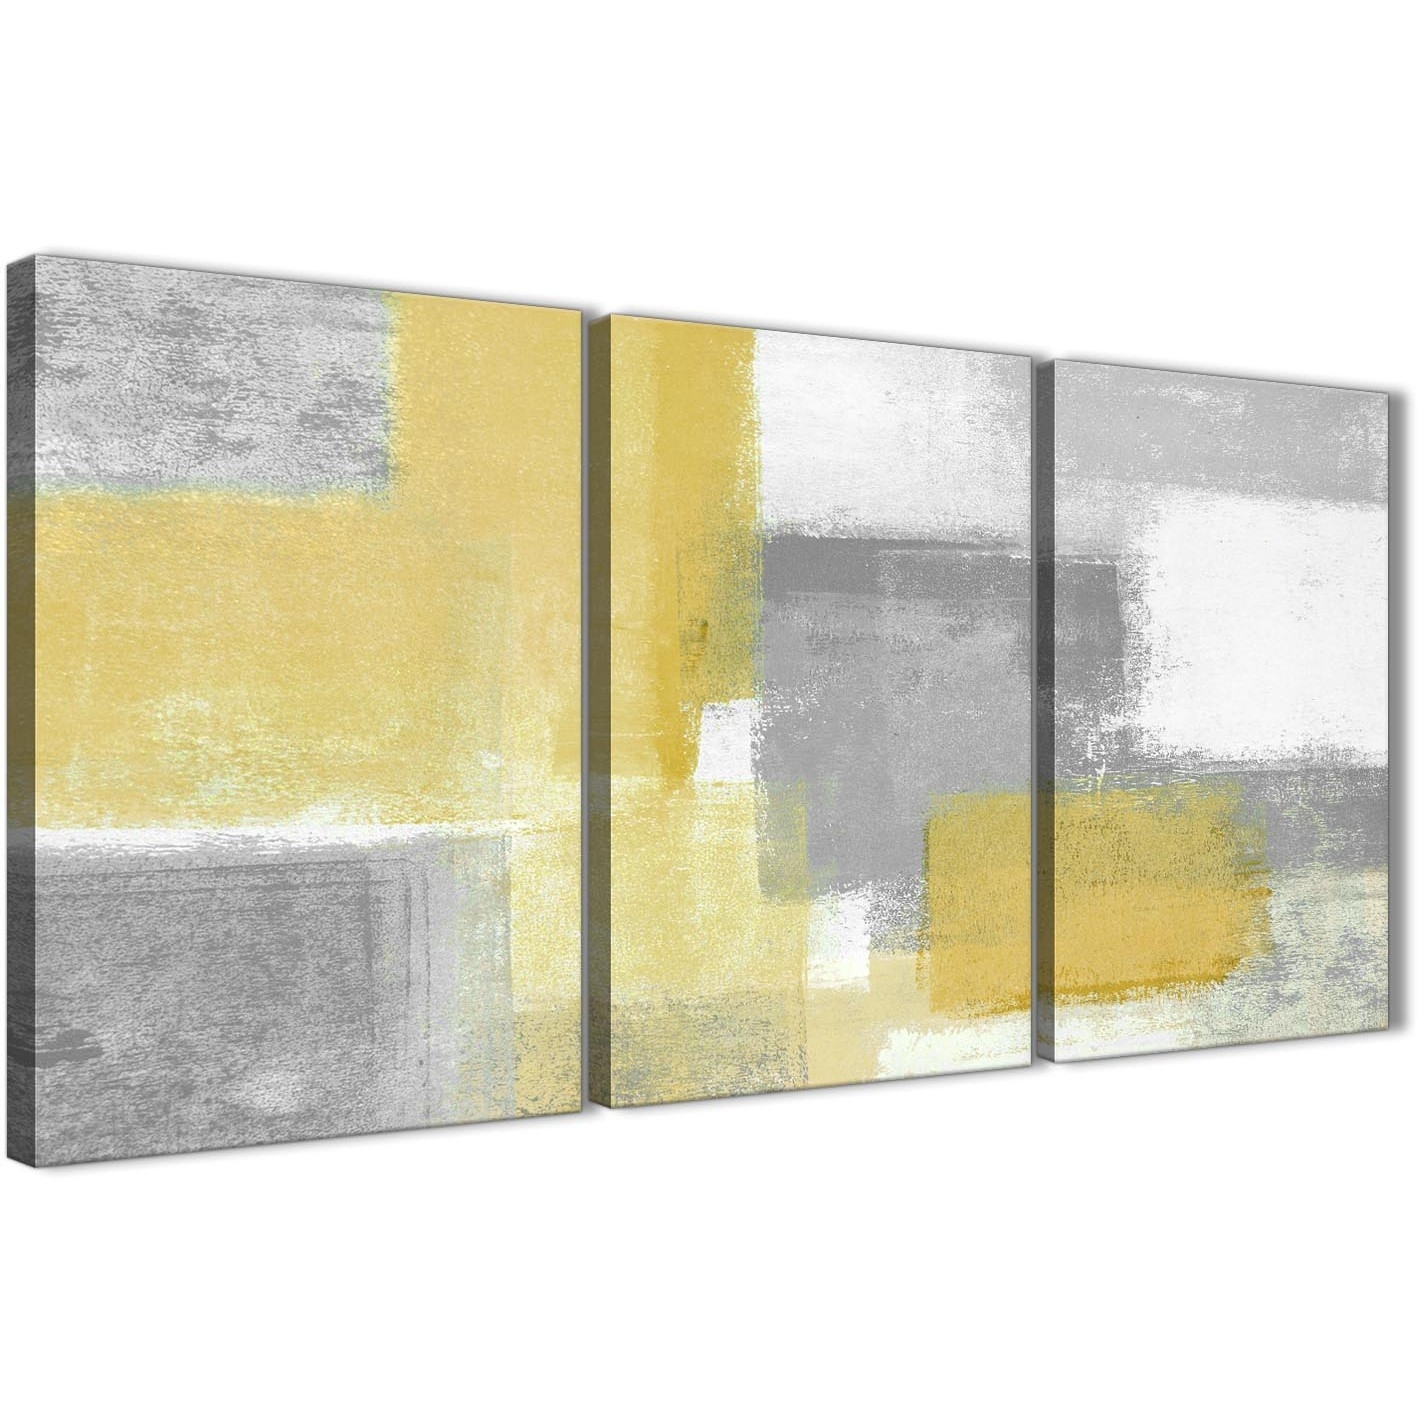 3 Panel Mustard Yellow Grey Kitchen Canvas Wall Art Decor - Abstract pertaining to Canvas Wall Art (Image 3 of 20)